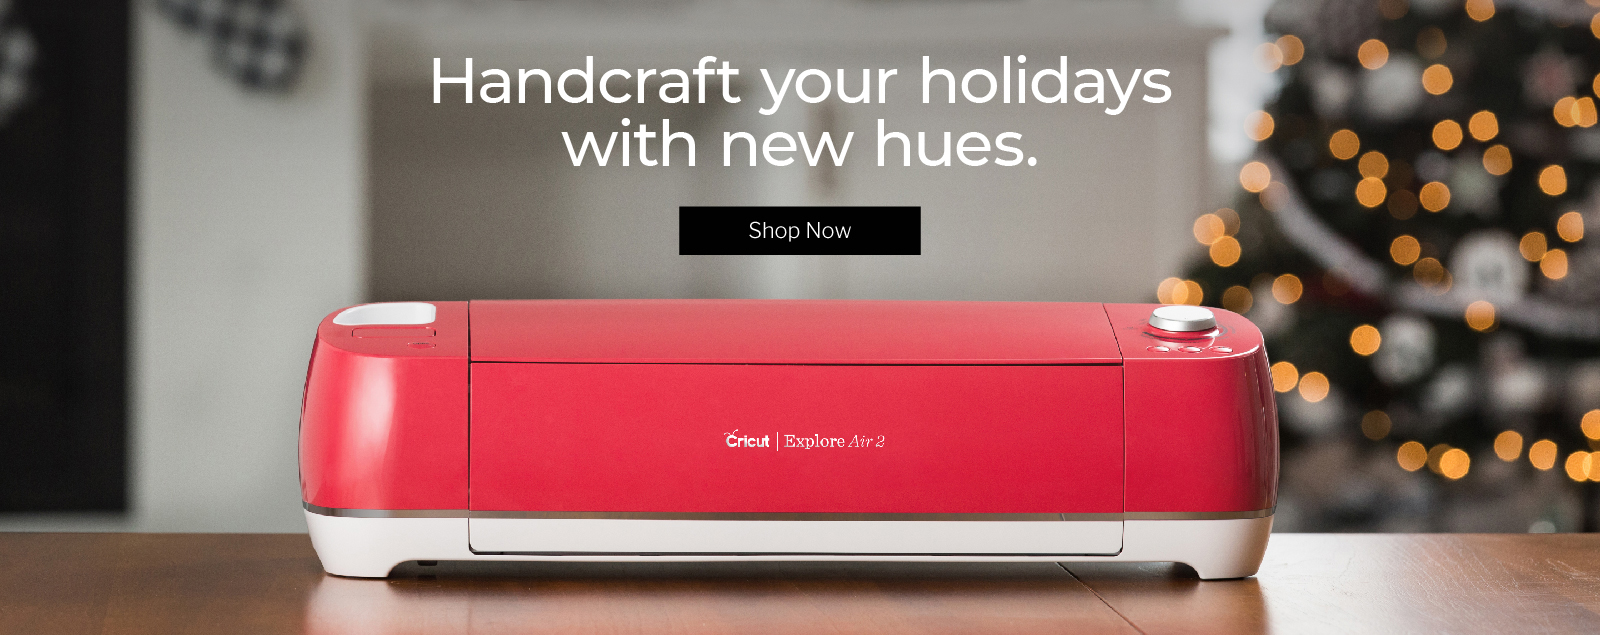 Handcraft your holidays with new hues.